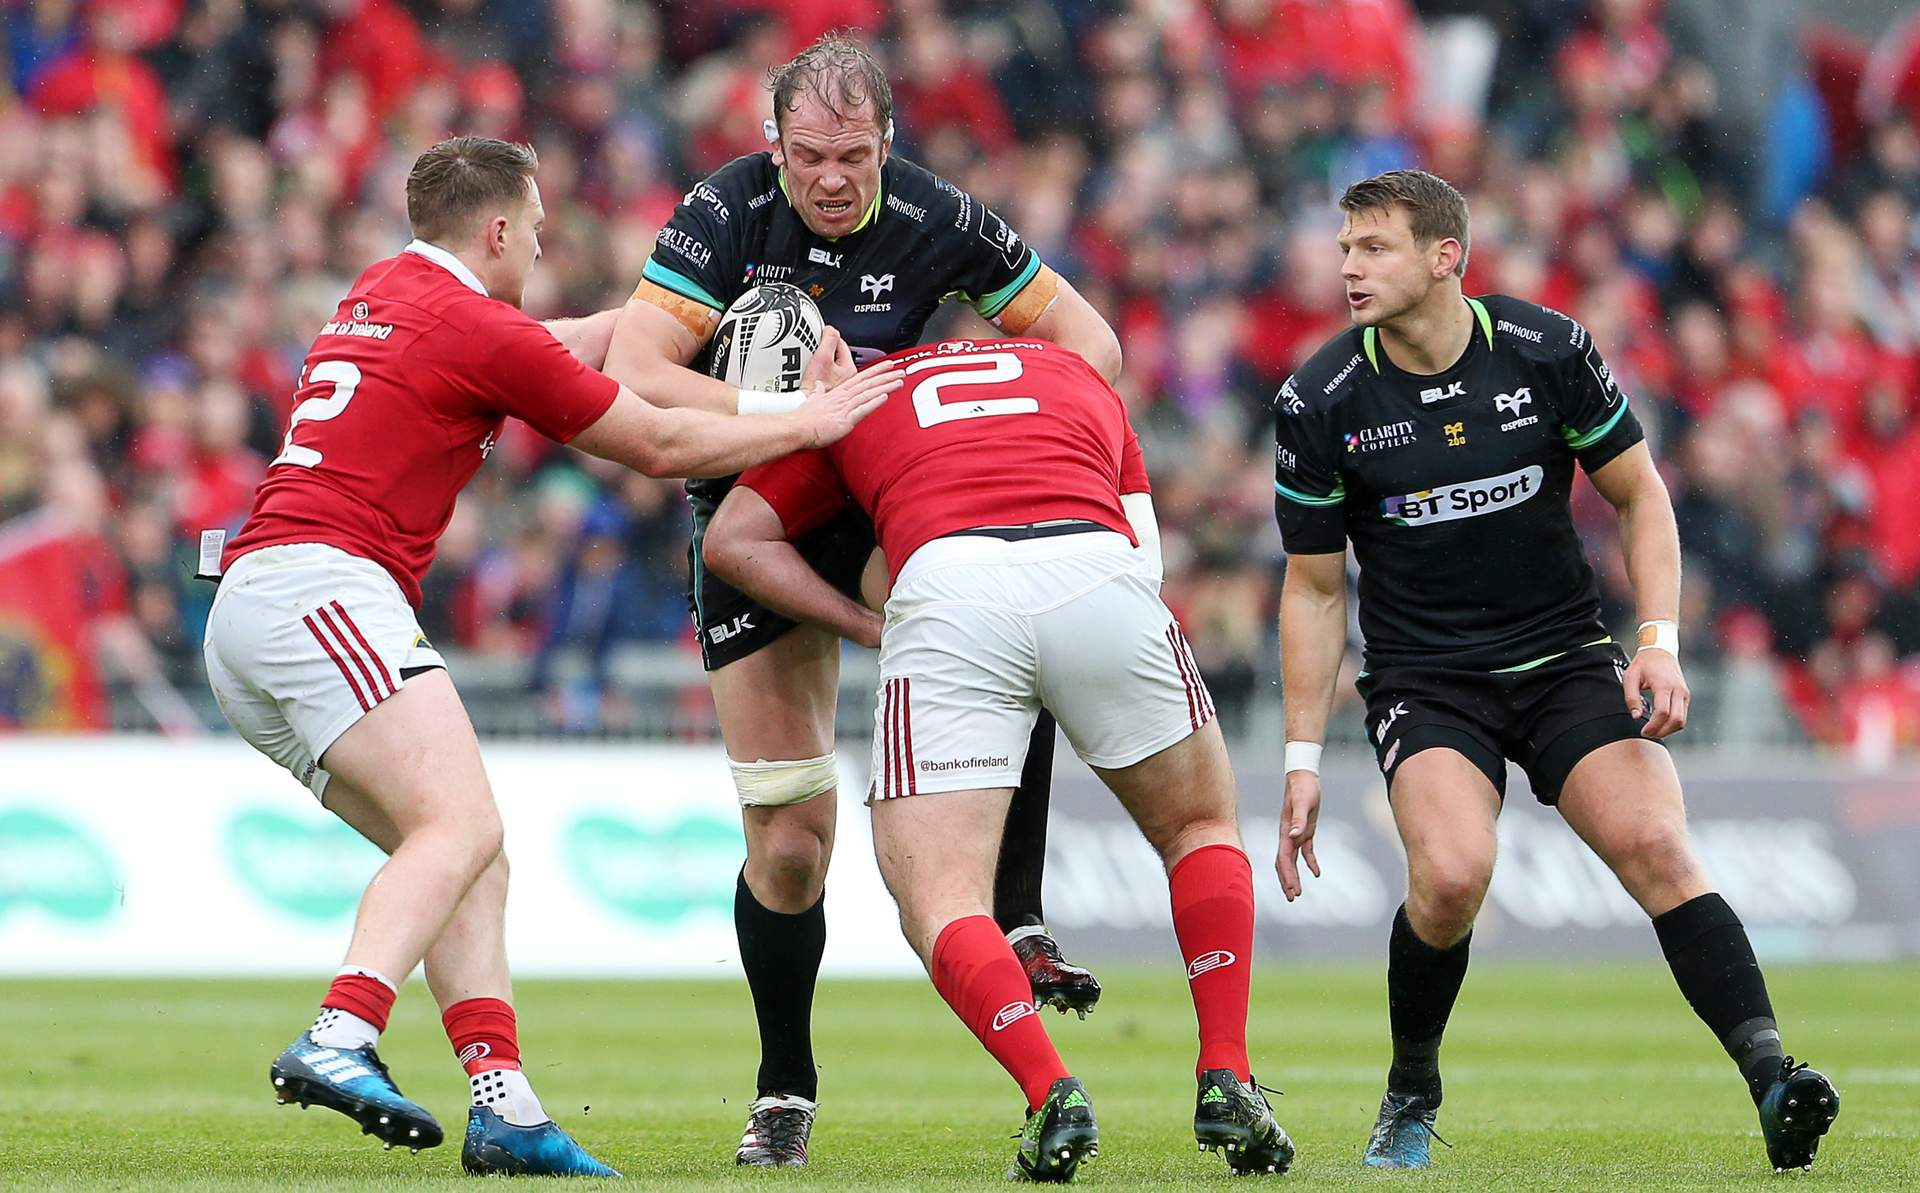 REPORT: Ospreys cant make it all-Welsh PRO12 final